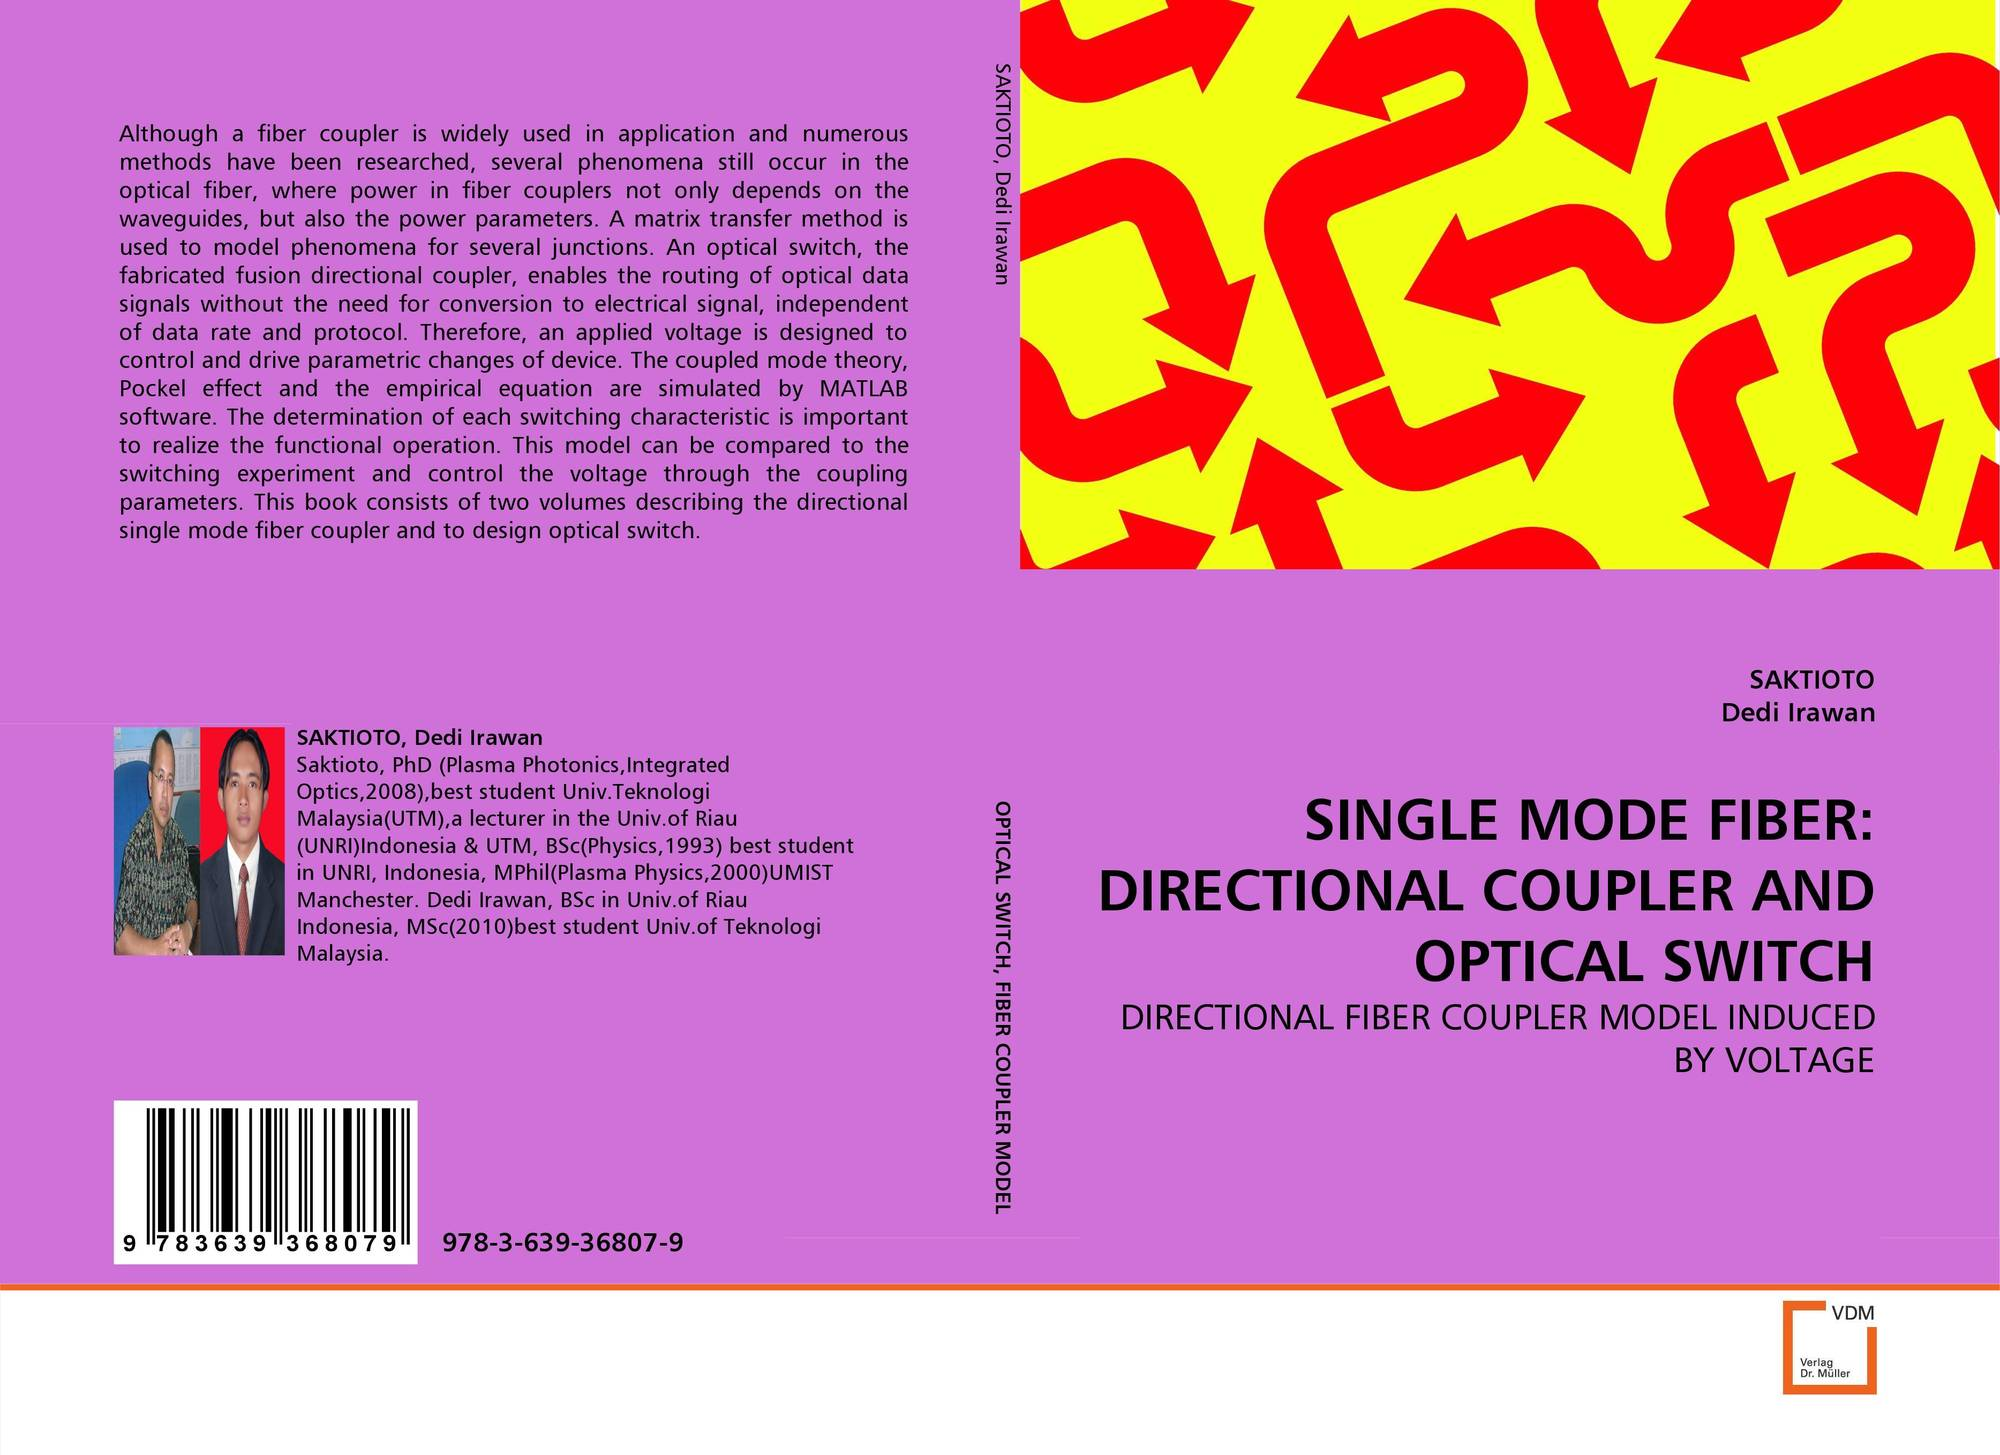 SINGLE MODE FIBER: DIRECTIONAL COUPLER AND OPTICAL SWITCH